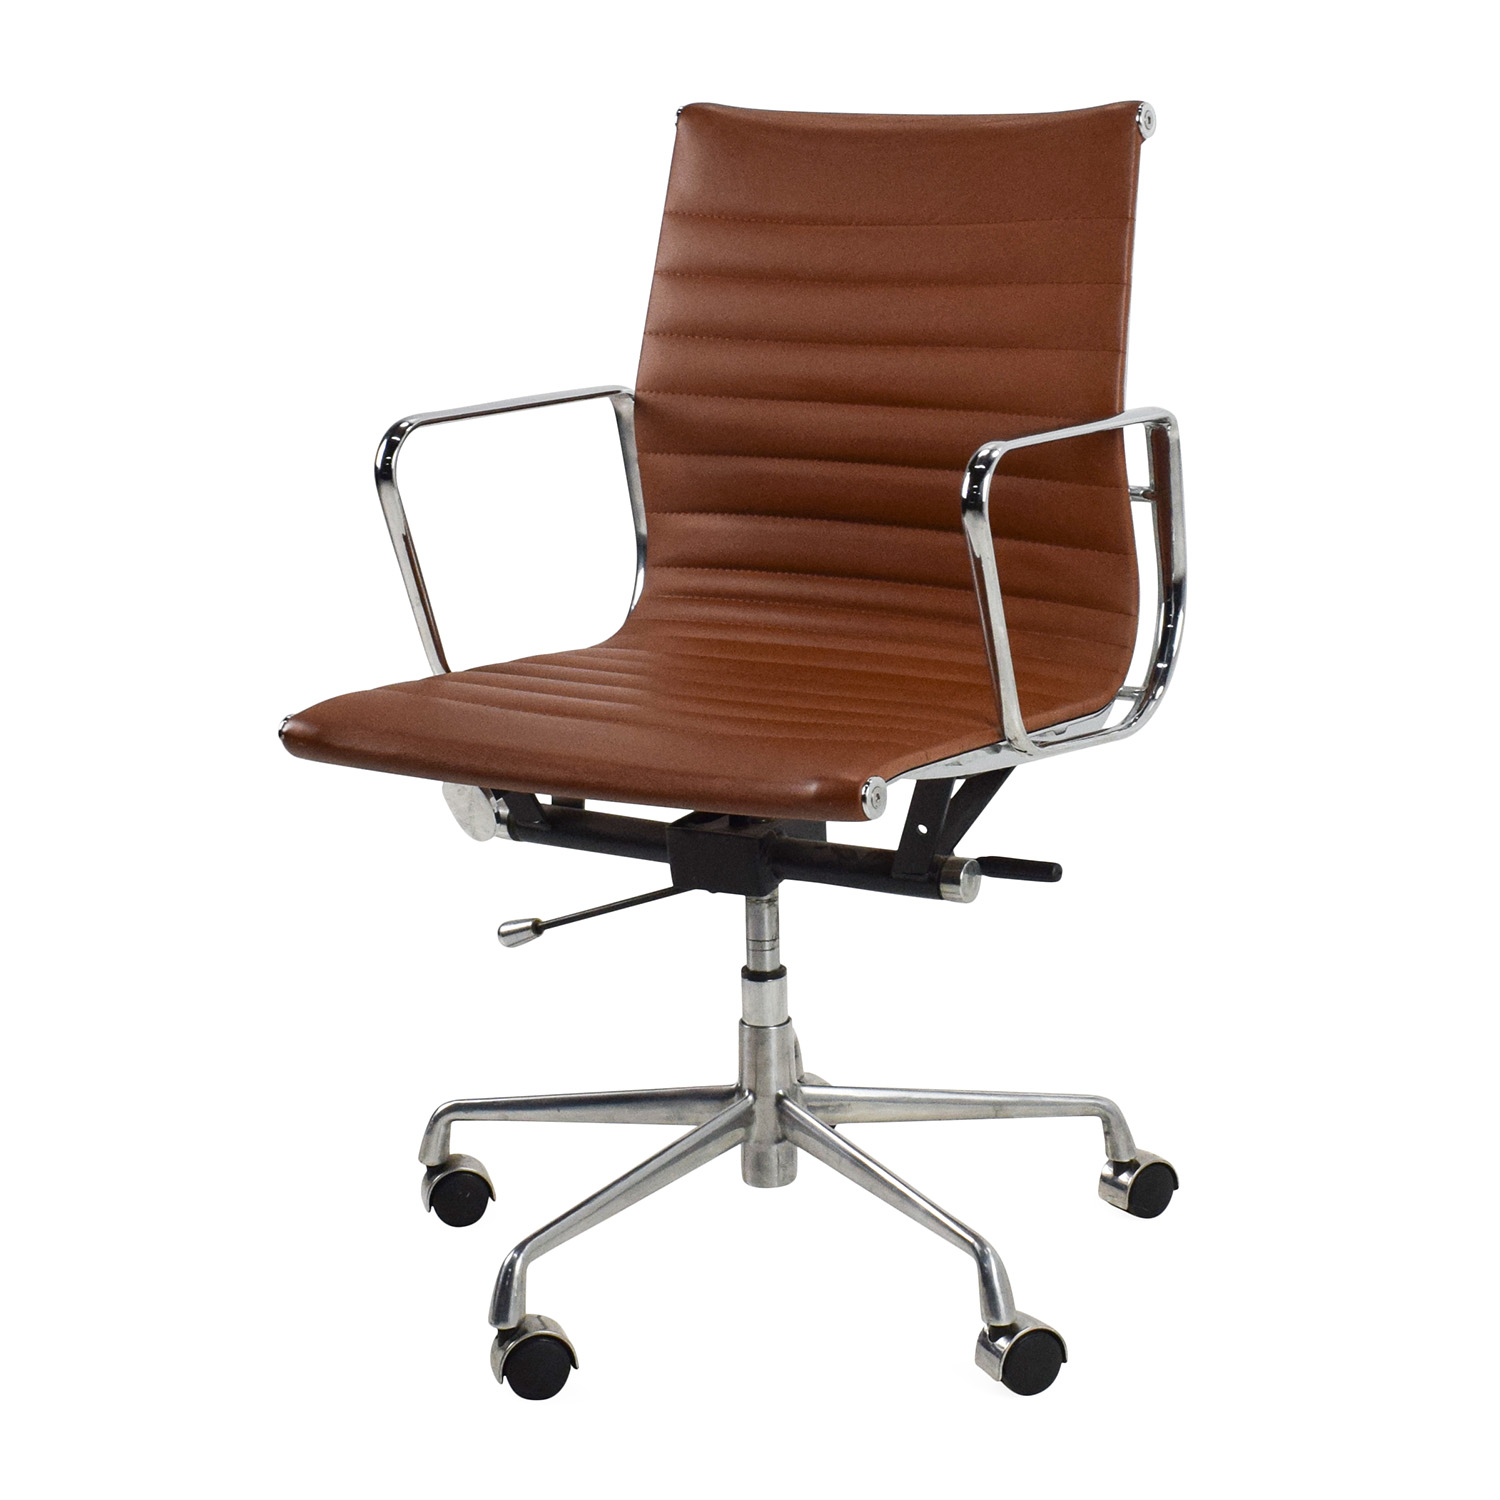 everywhere chair coupon code swing baby best 68 off unknown brand chrome office chairs